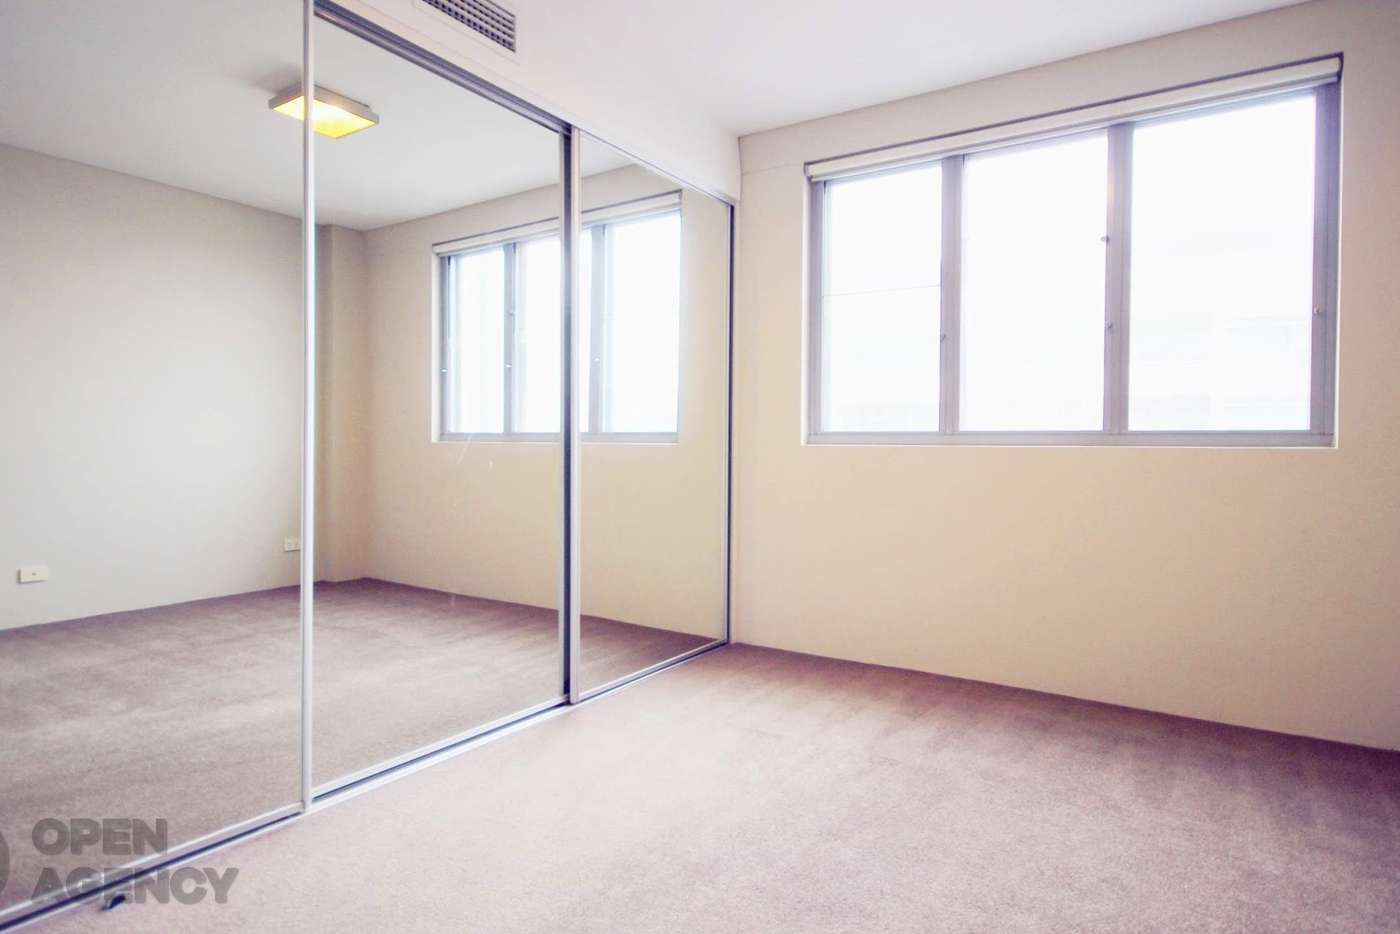 Sixth view of Homely apartment listing, B42/158 Maroubra Road, Maroubra NSW 2035